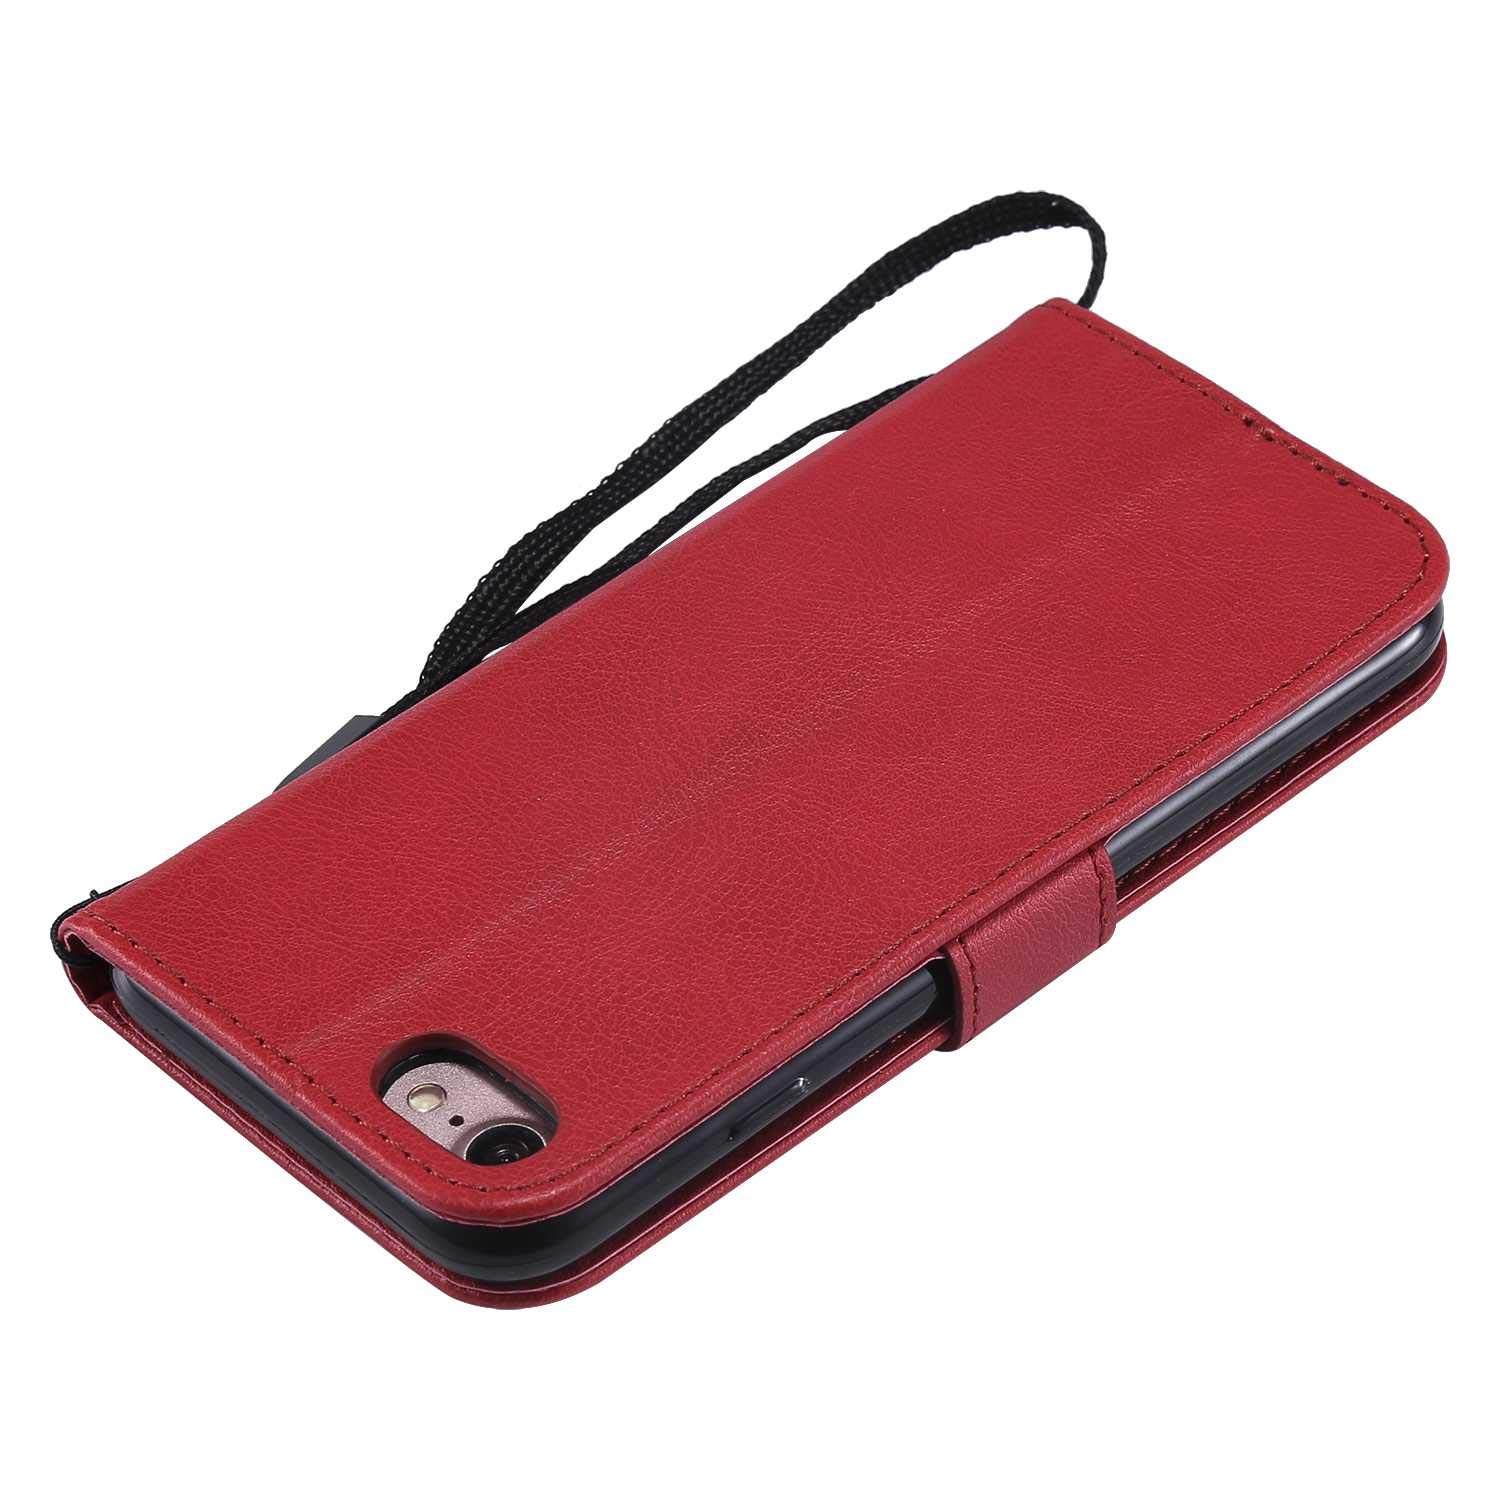 iPhone 7/8 Case, The Grafu Shockproof Leather Wallet Flip Case with [Card Slots] [Wrist Strap] Stand Function Cover for Apple iPhone 7 / iPhone 8, Red by The Grafu (Image #4)